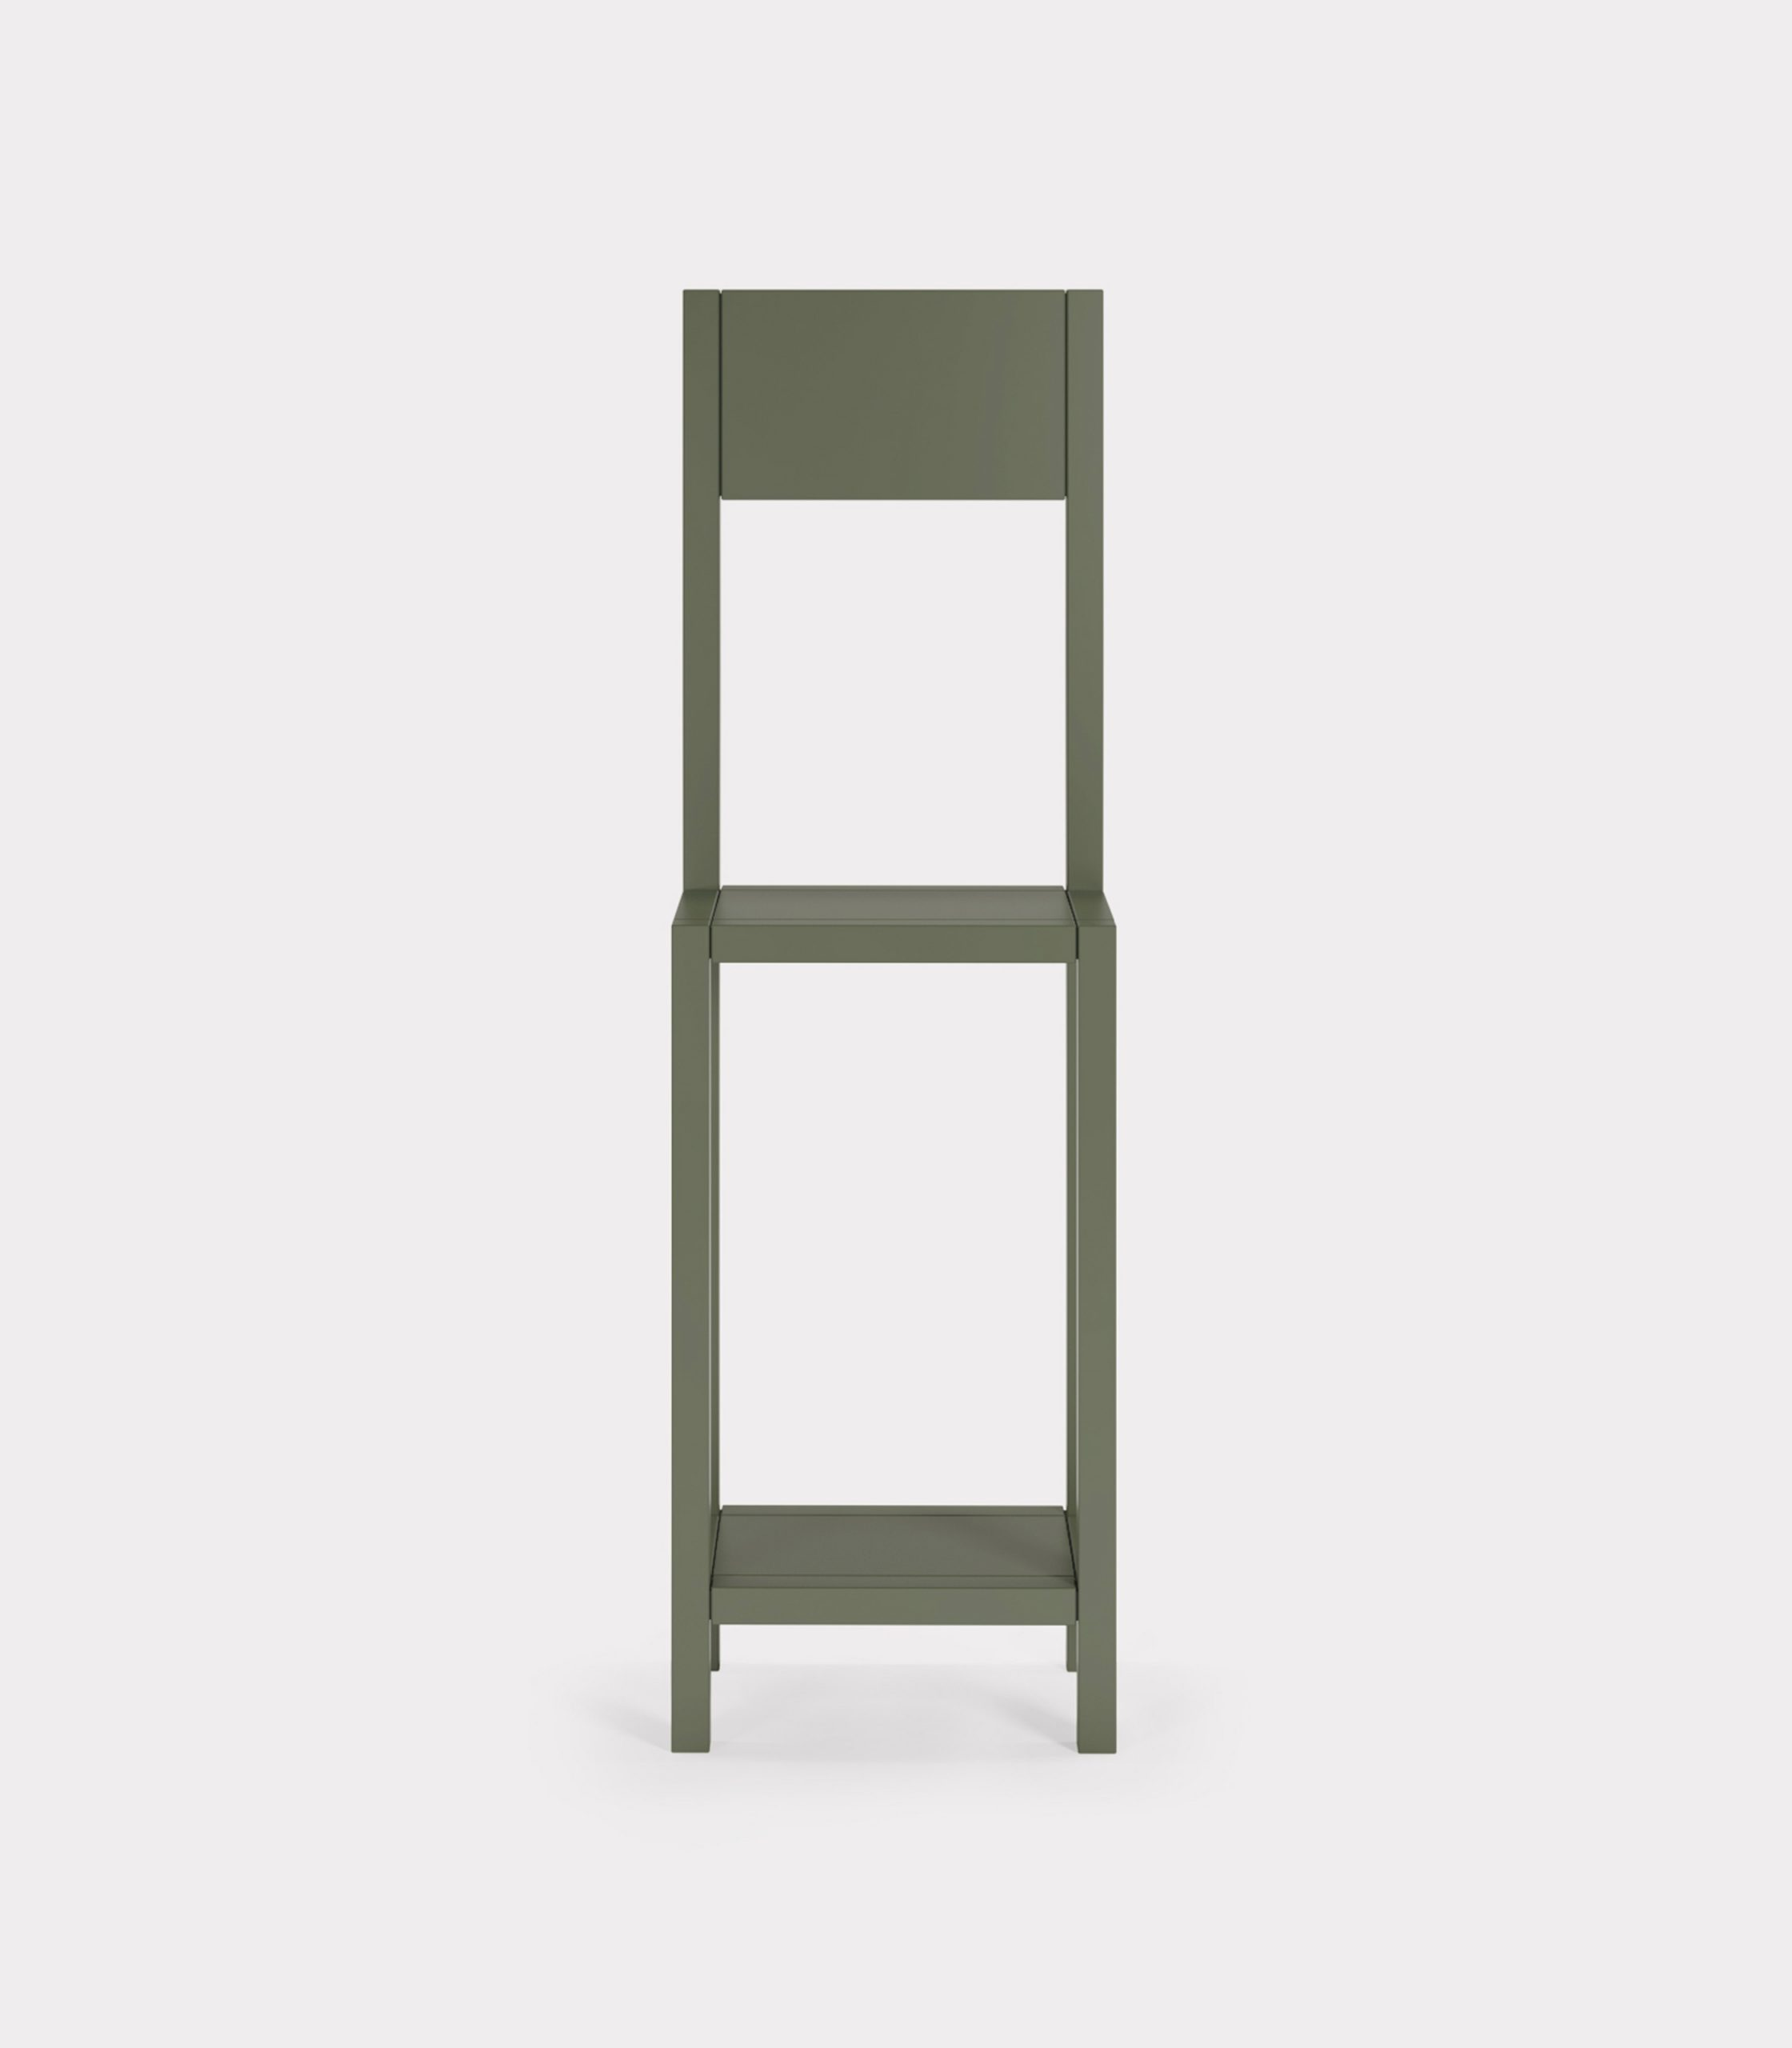 Olive green chair for an unexpected guest loopo milano design F